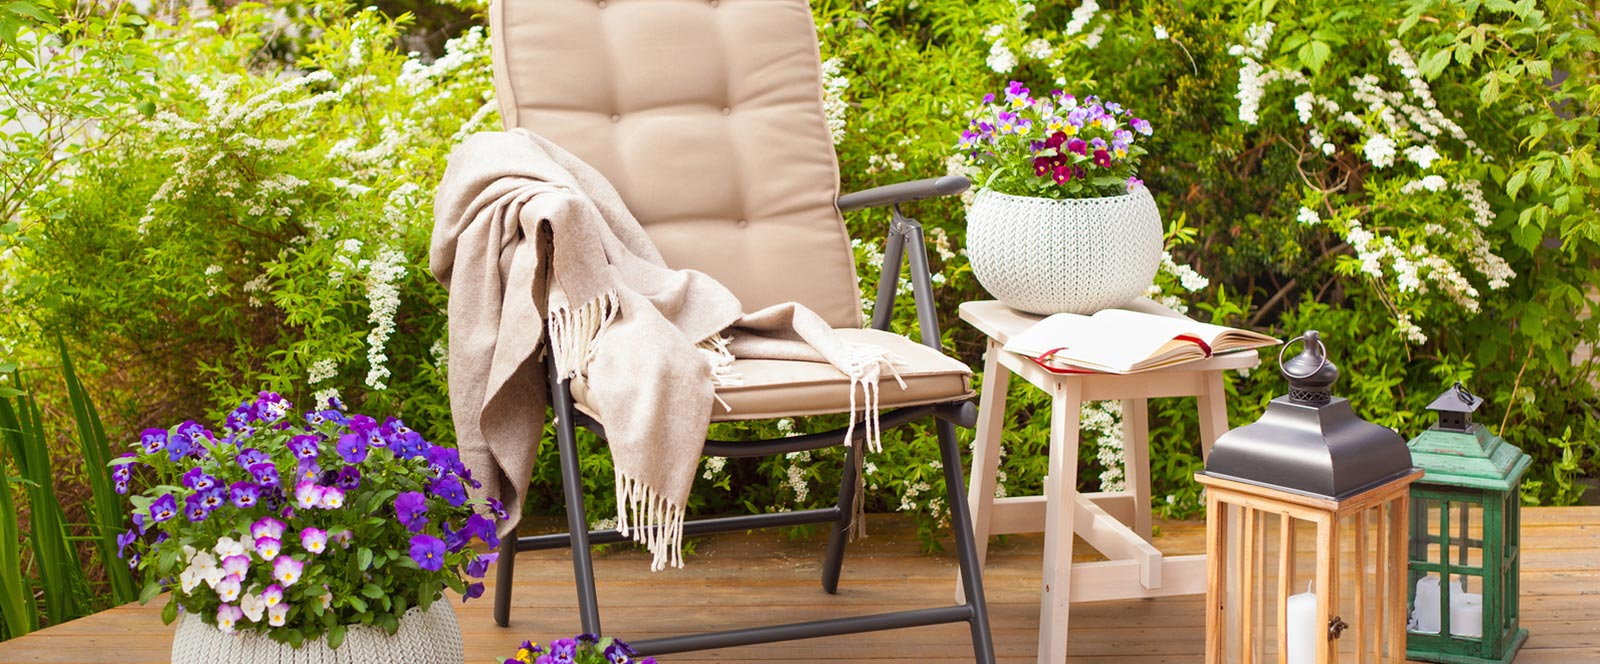 Layer your home and garden with texture and color